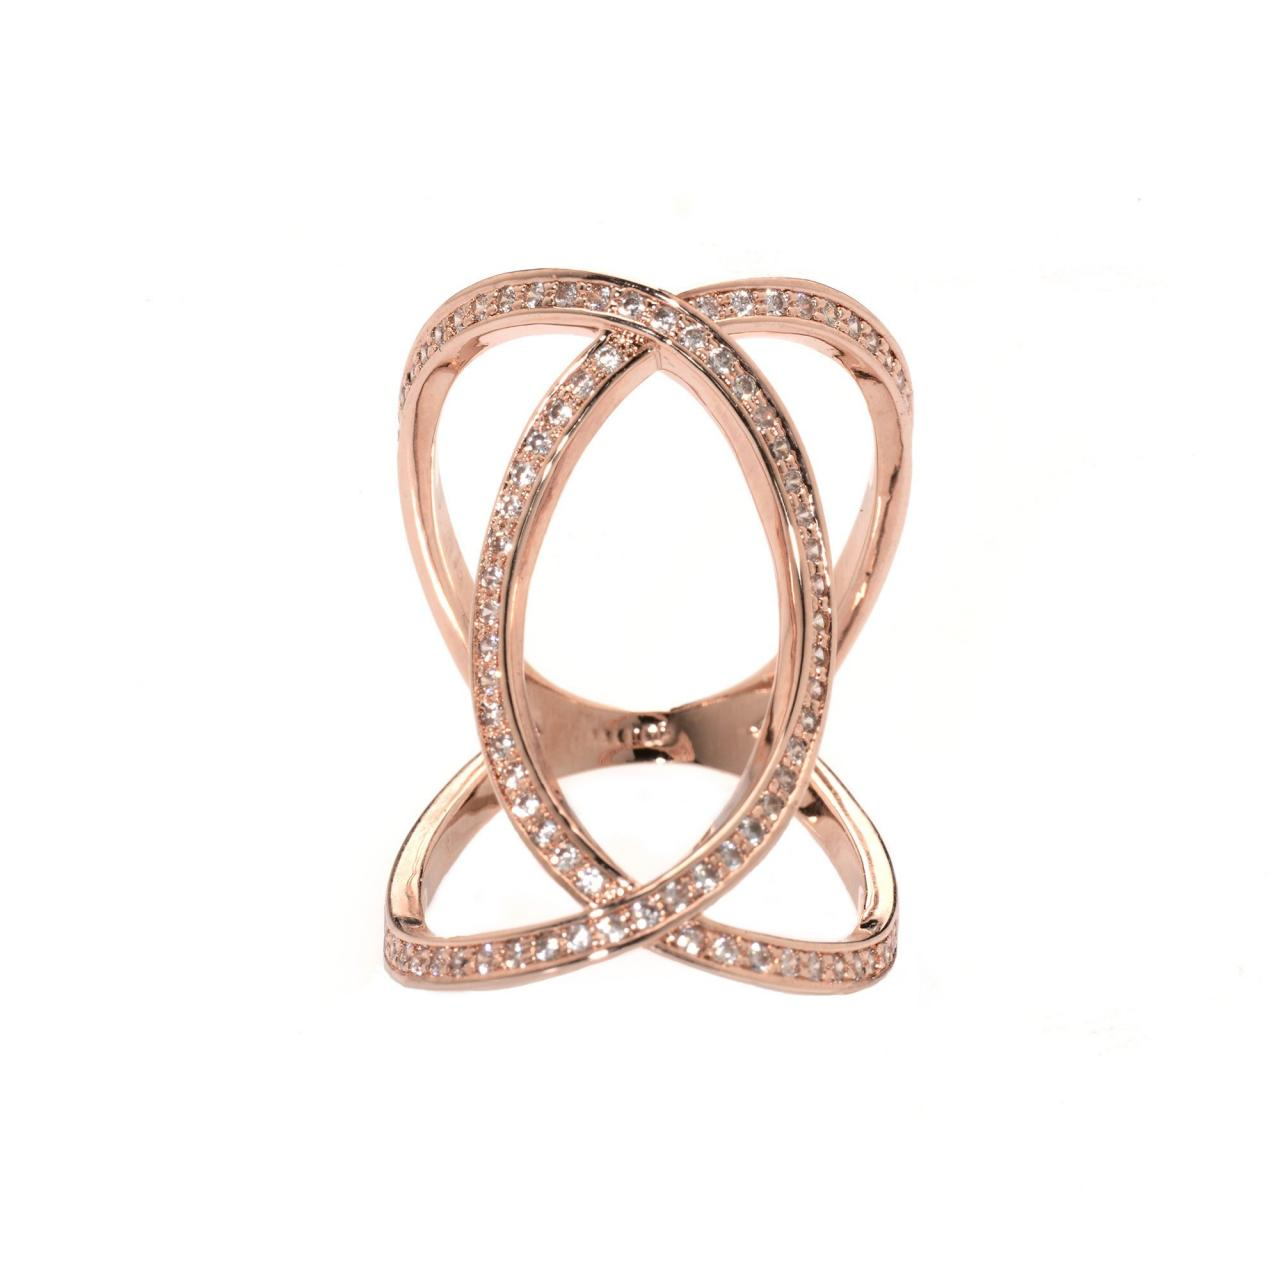 Infinity Ring / Rose Gold Ring / Zircon Ring / Evening Ring / Adjustable Ring / Bling Ring Index Ring / Large Ring / Long Ring / Rose Gold